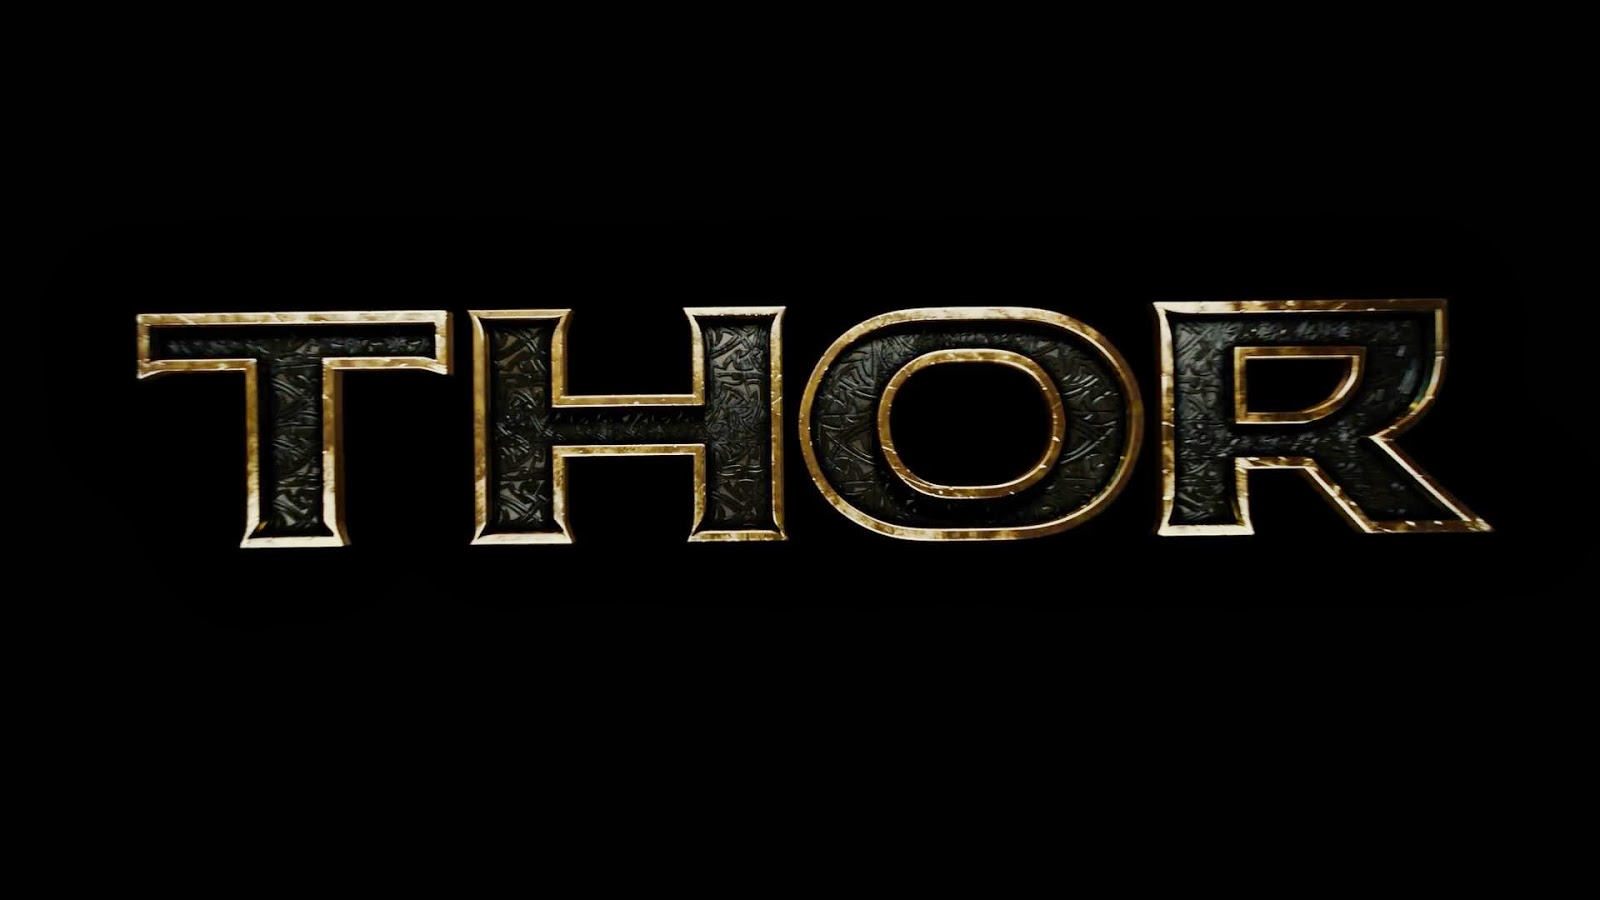 Thor 2 The Dark World (2013) S2 s Thor 2 The Dark World (2013)